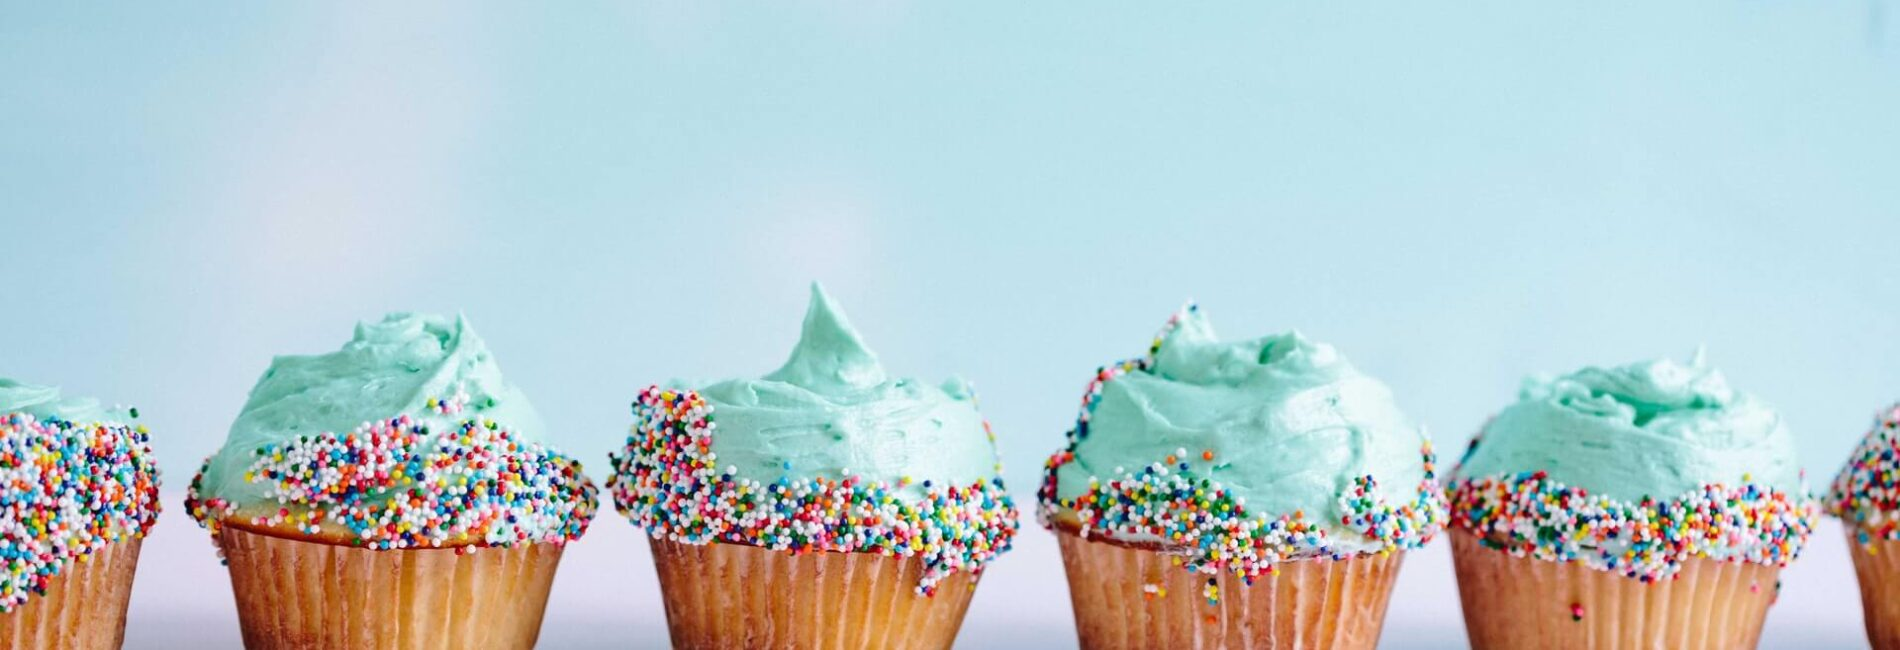 Decorate Your Cake Using the Cake Mix Bag